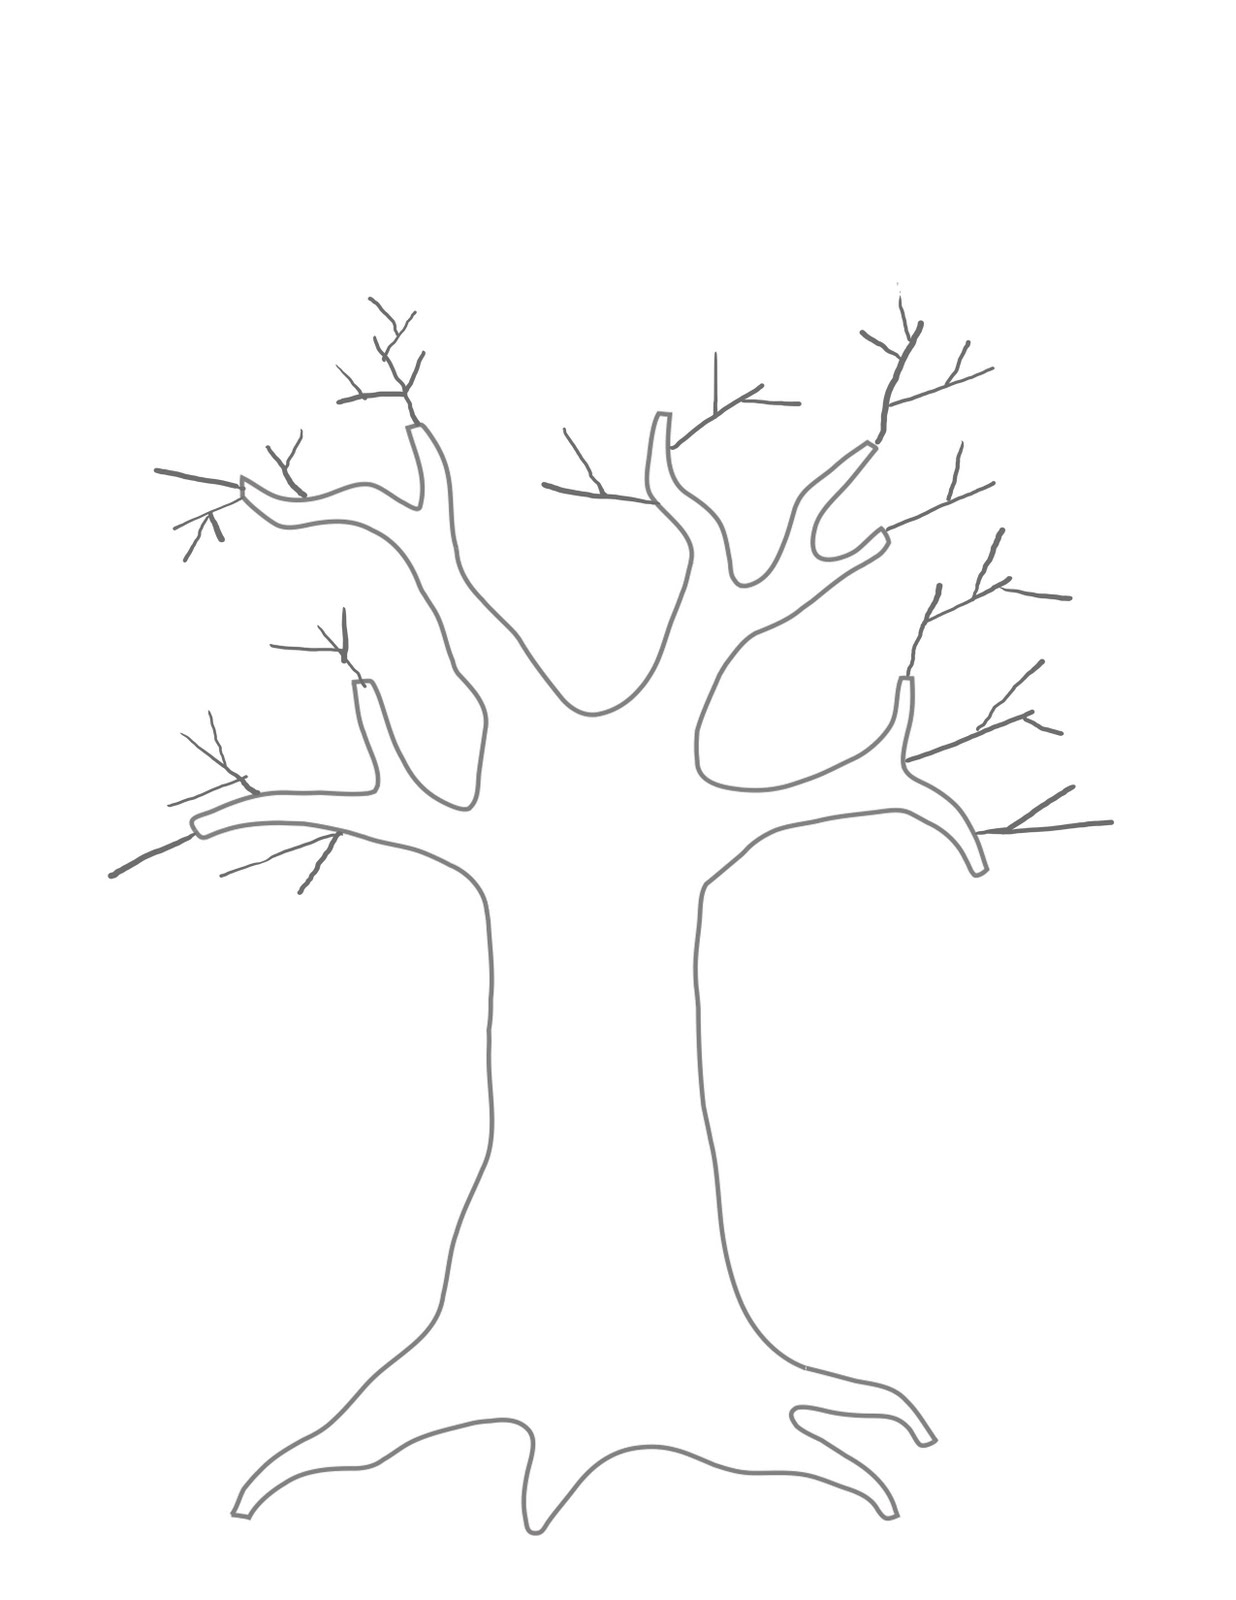 tree trunk coloring page fall tree trunk clip art cliparts coloring tree trunk page